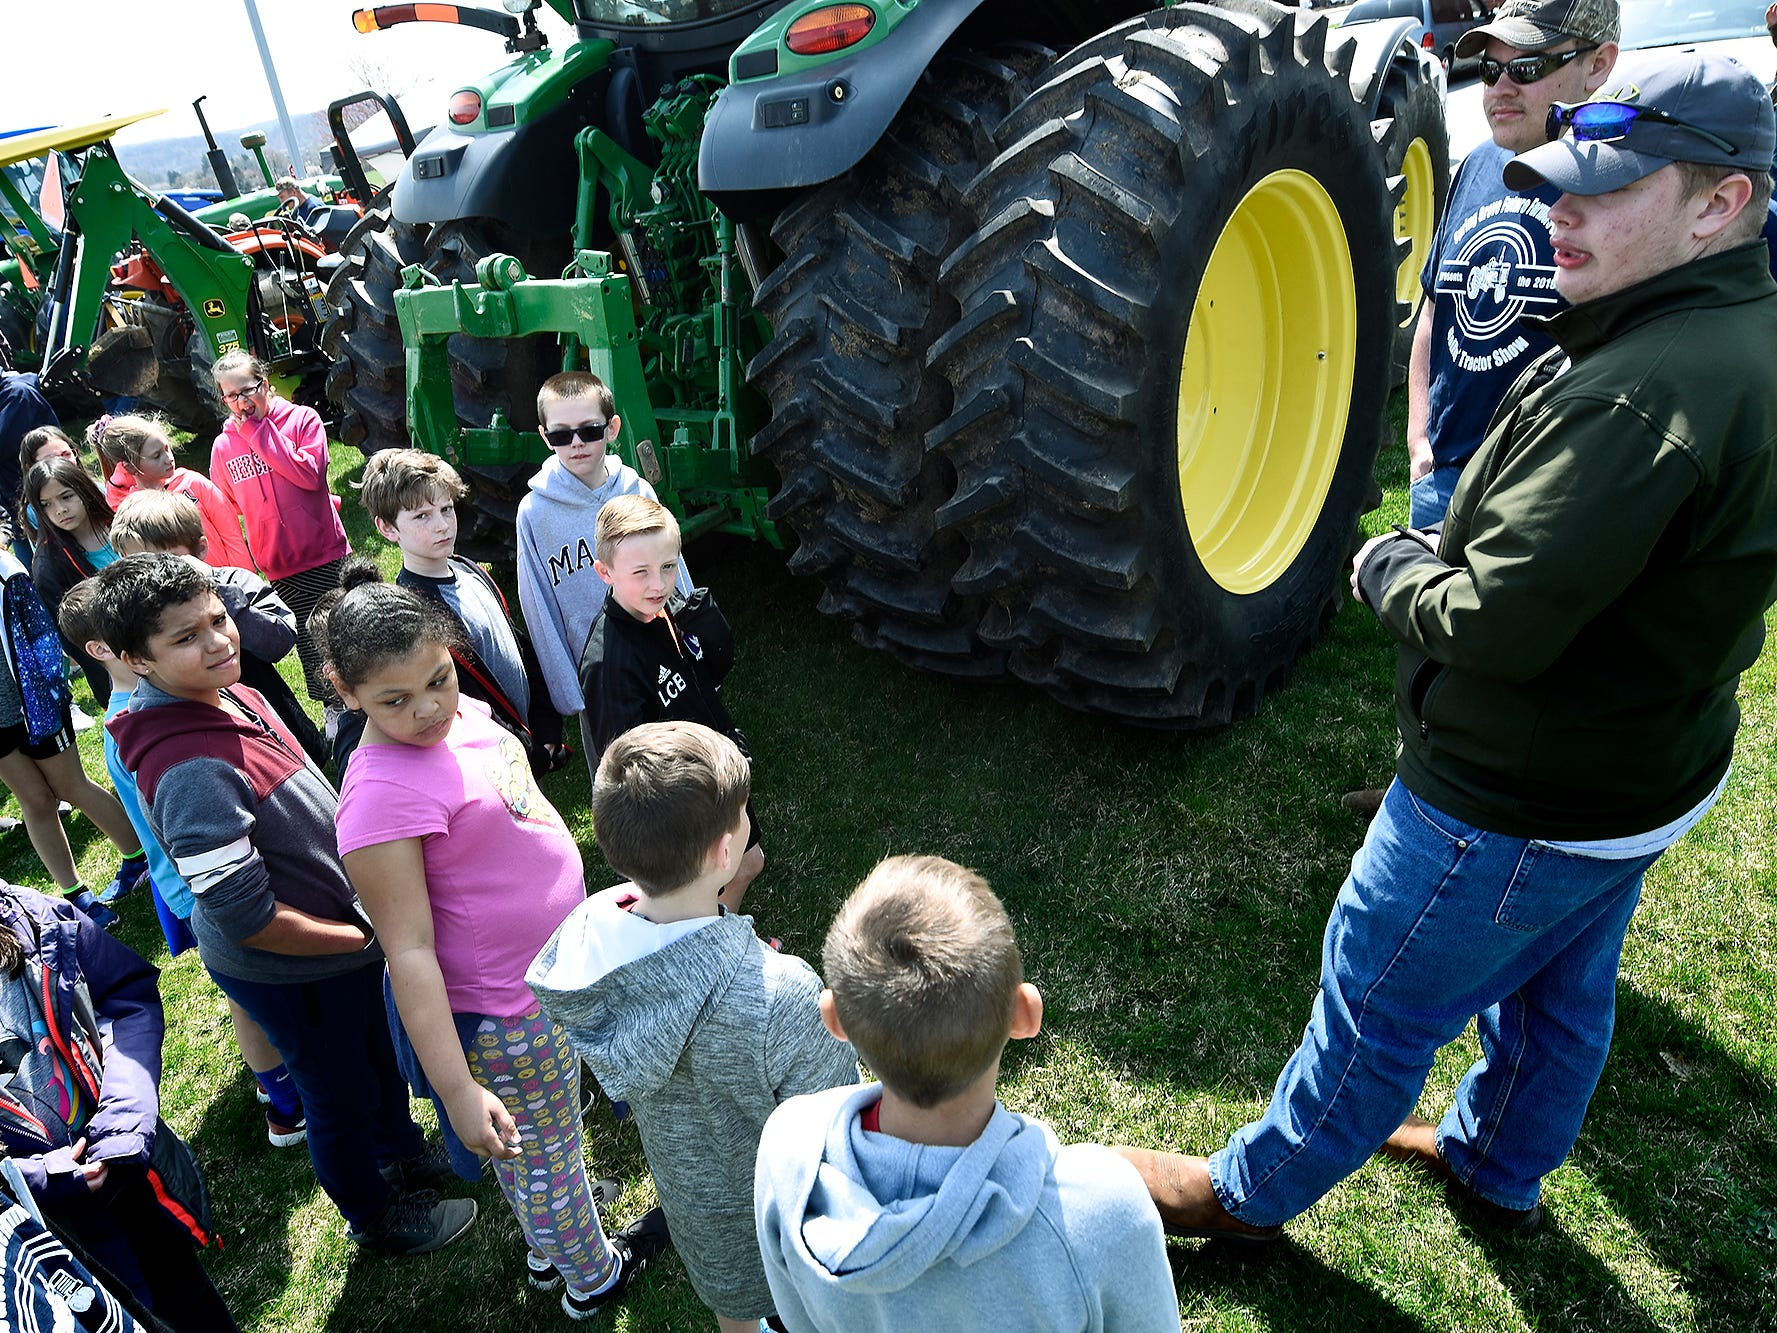 Spring Grove Elementary students listen to a presentation during the district's 6th Annual Rollin' Tractor Show Thursday, April 11, 2019, presented by the Future Farmers Club. Alumni and area residents brought farm equipment to display with the goal of acquainting students with the agriculture industry. The show, which included a parade of equipment, visited the intermediate and elementary schools. Bill Kalina photo